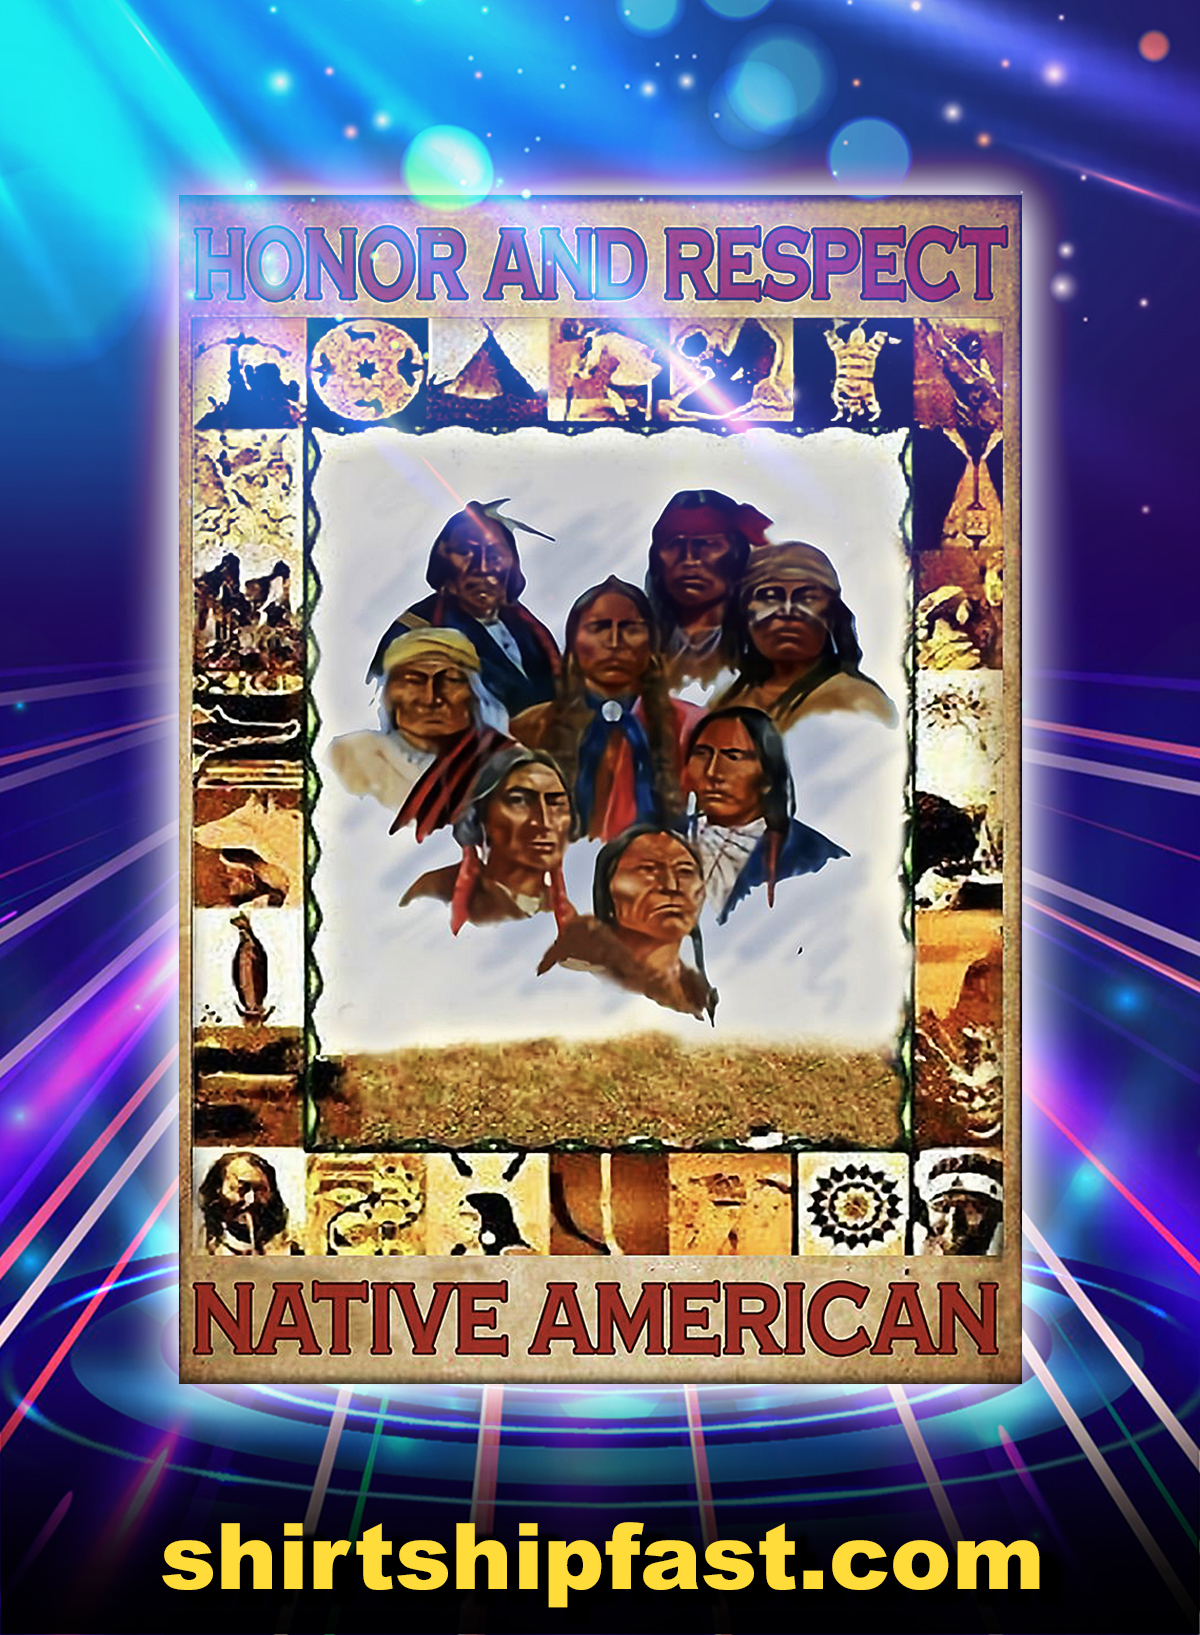 Honor and respect native american poster